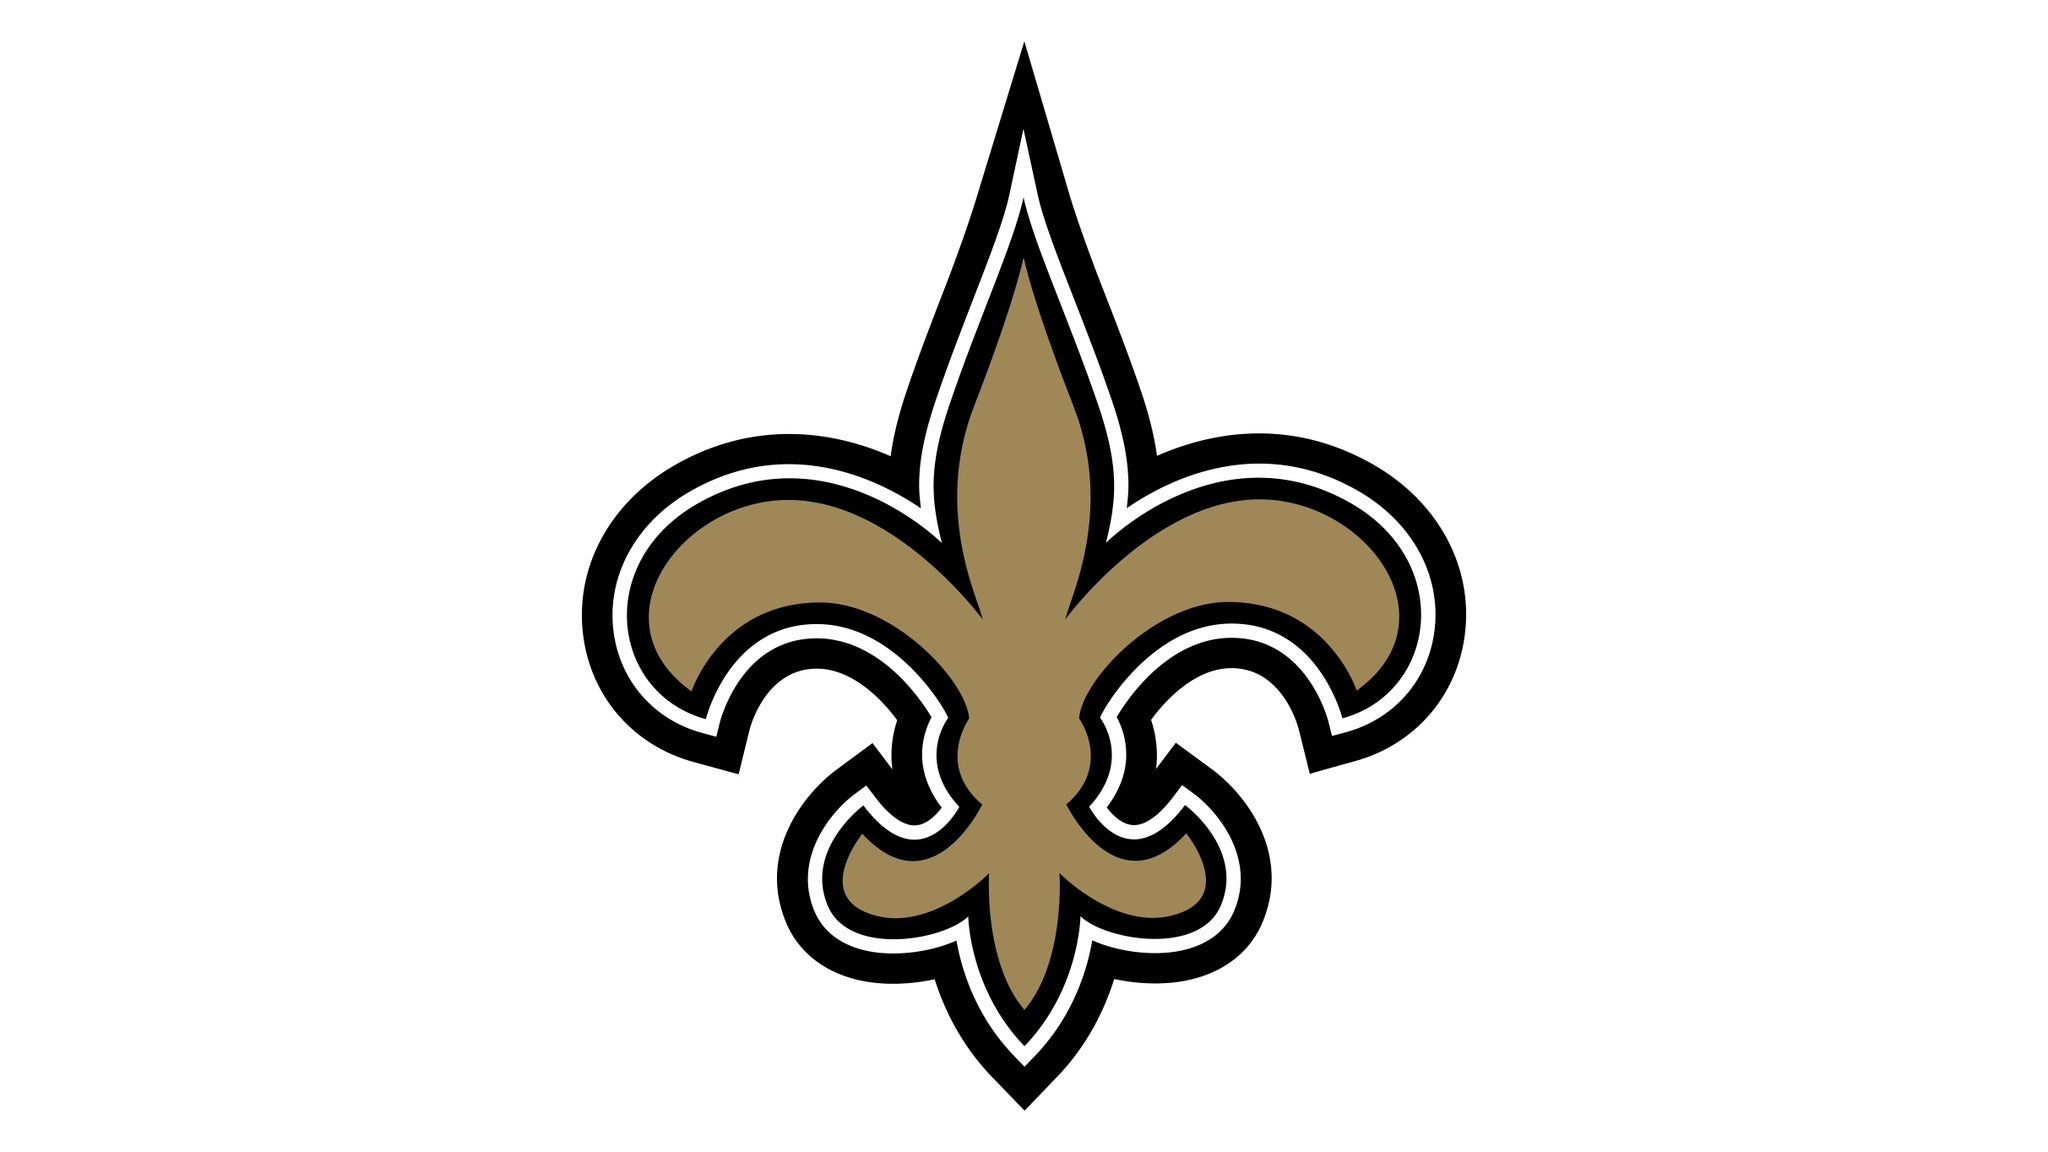 New Orleans Saints vs. Atlanta Falcons